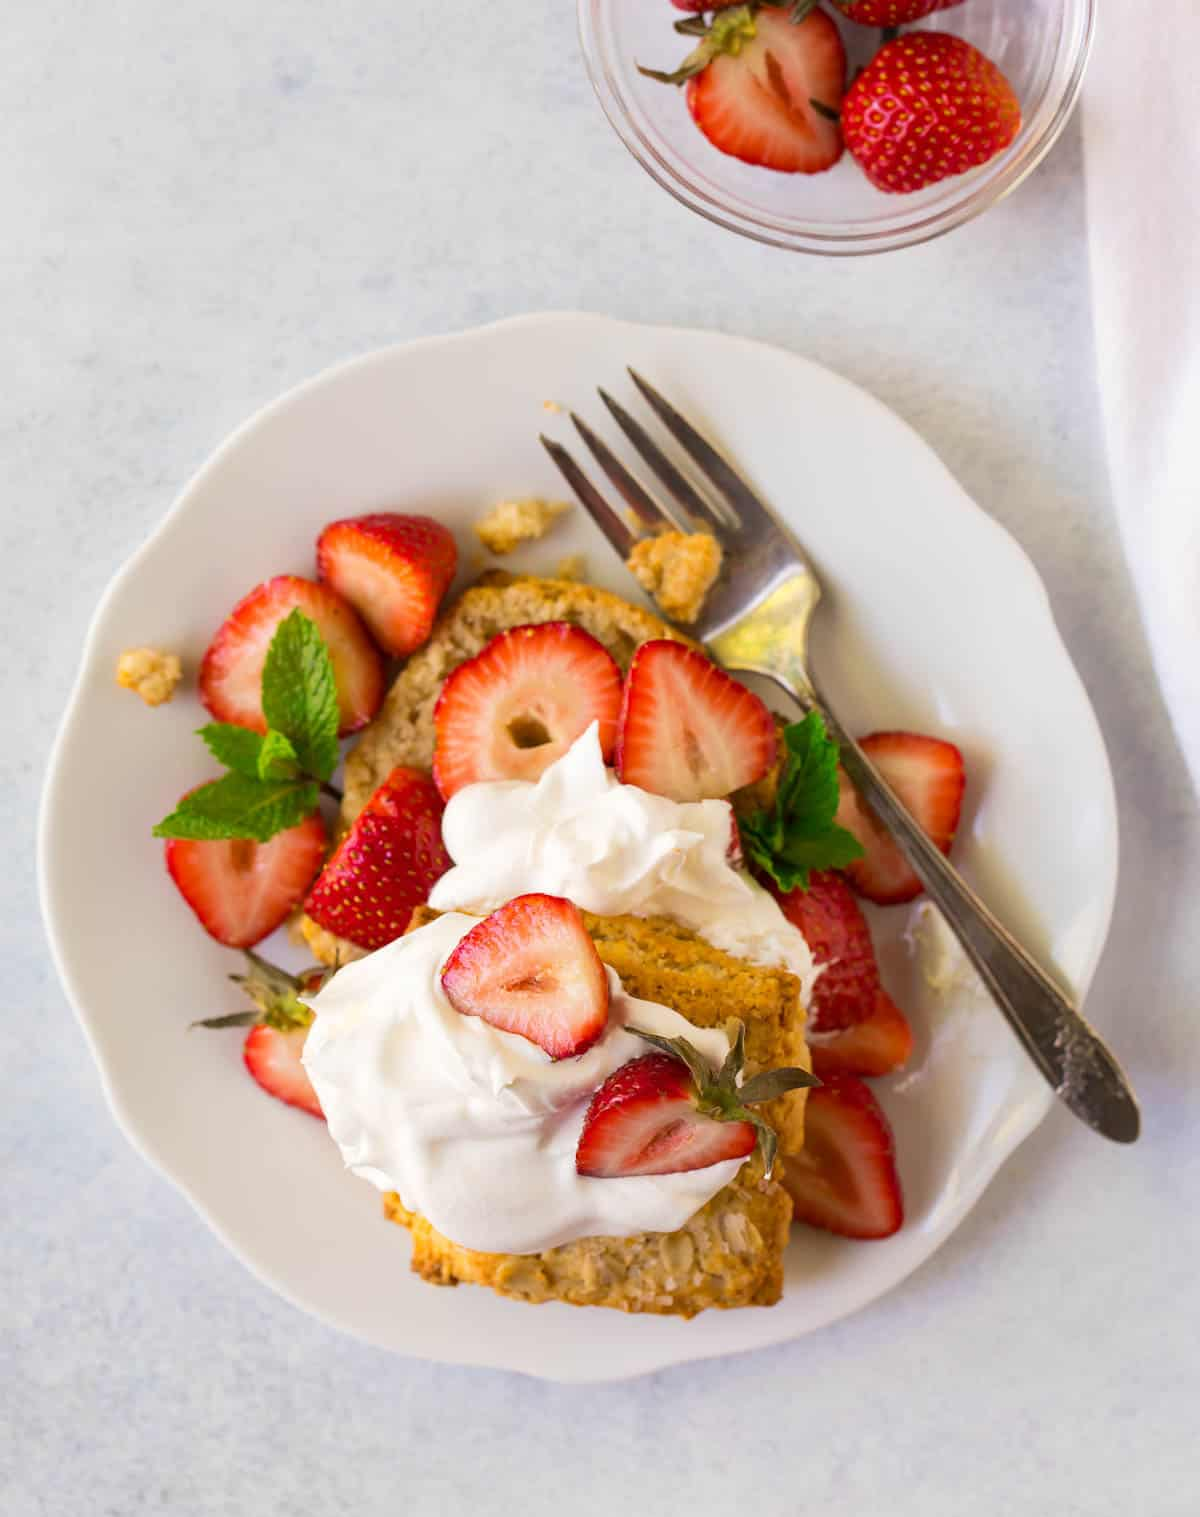 Overhead photo of gluten free strawberry shortcakes on a white plate with a fork and topped with fresh strawberries and whipped cream.